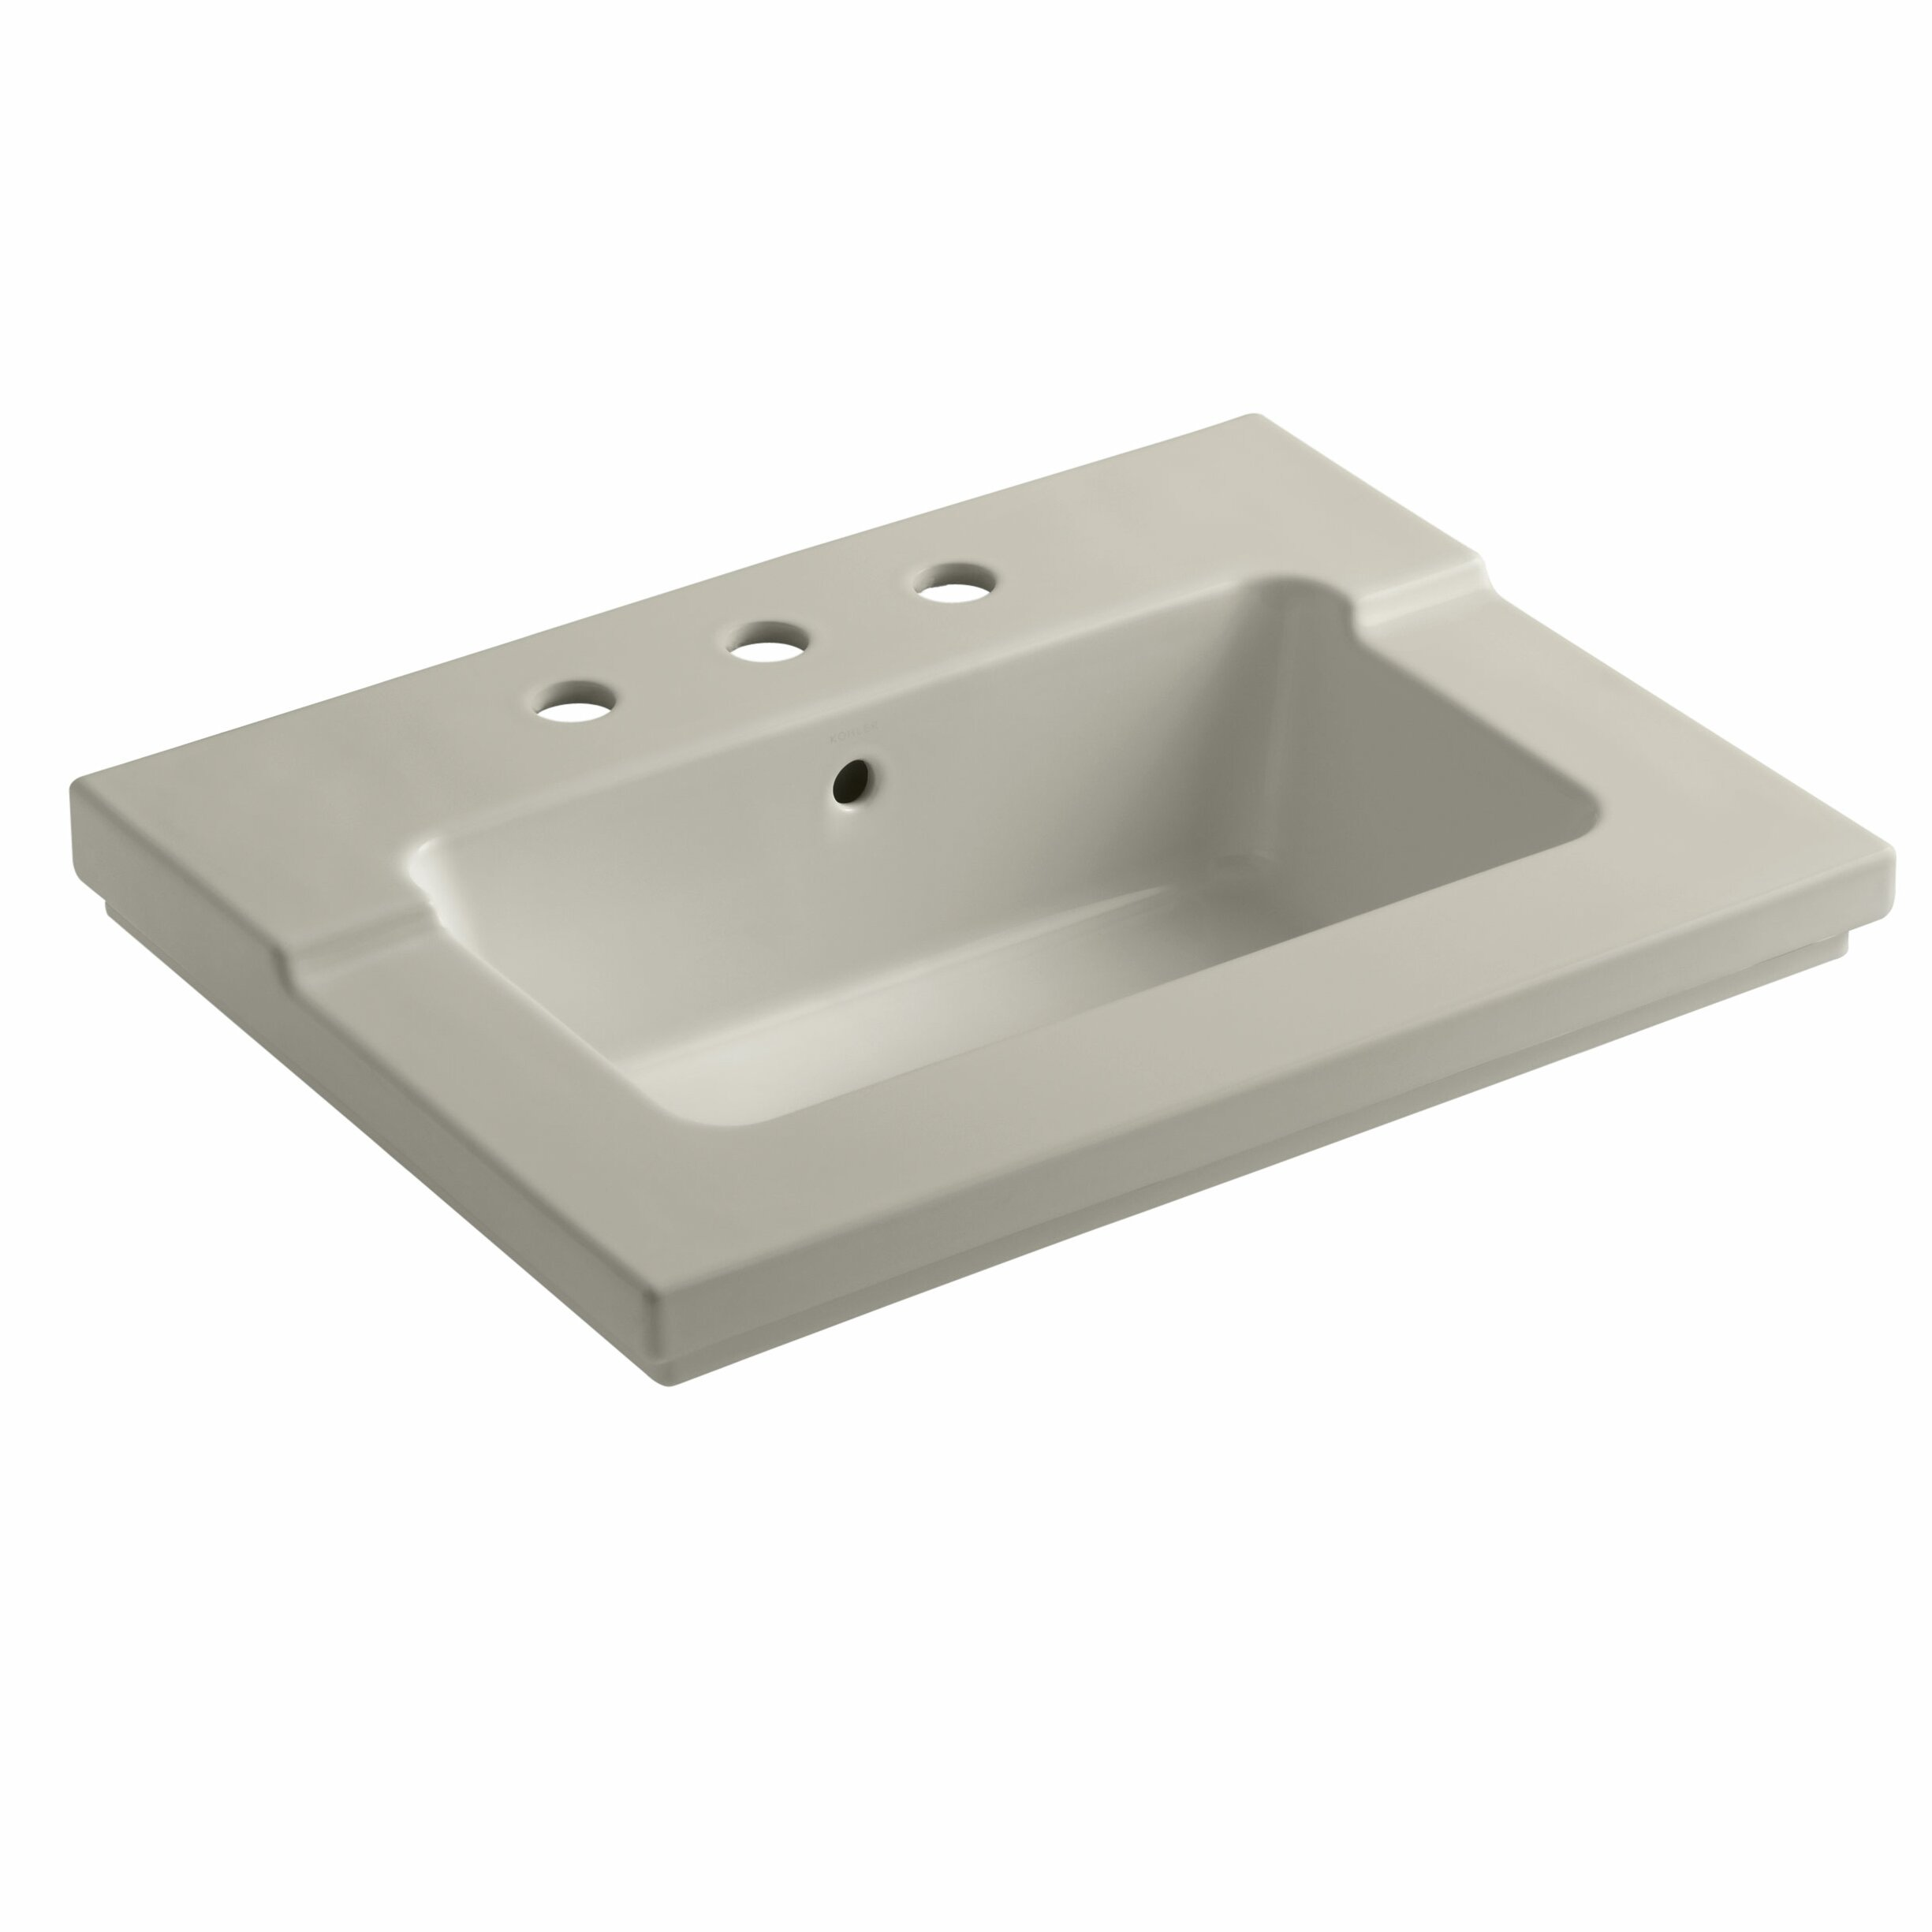 Kohler Tresham Vanity Top Sink by Kohler Tresham Vanity Top Bathroom  Sink With Widespread. 20    Kohler Tresham Vanity Top Sink     Plumbing Amp Hardware